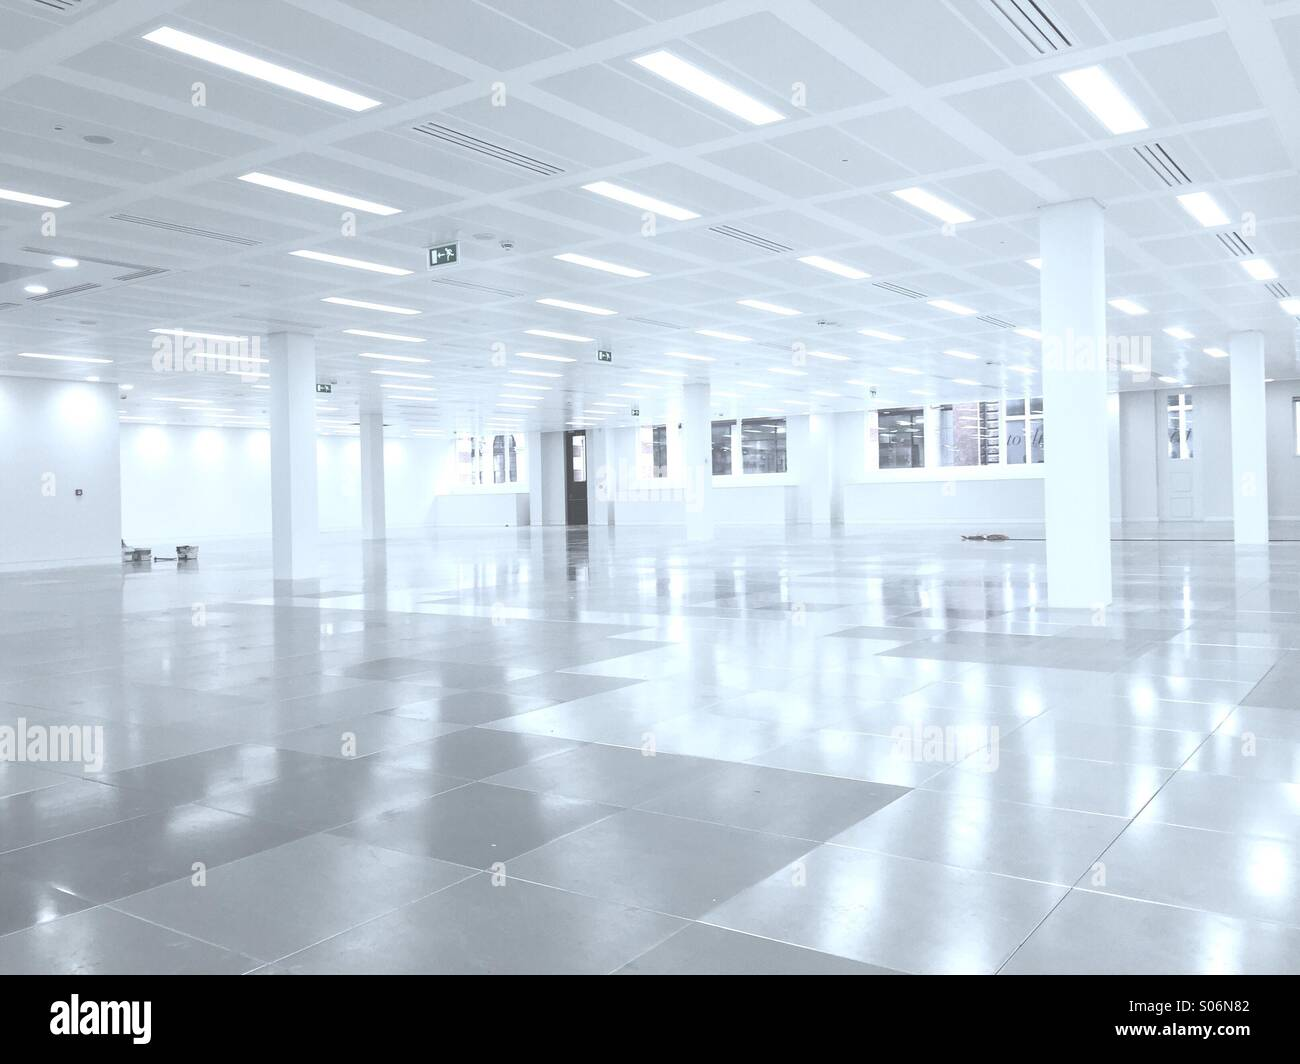 Blue White Office Space Jonathan Adler Empty Clean White Office Space With Futuristic Feel Alamy Empty Clean White Office Space With Futuristic Feel Stock Photo